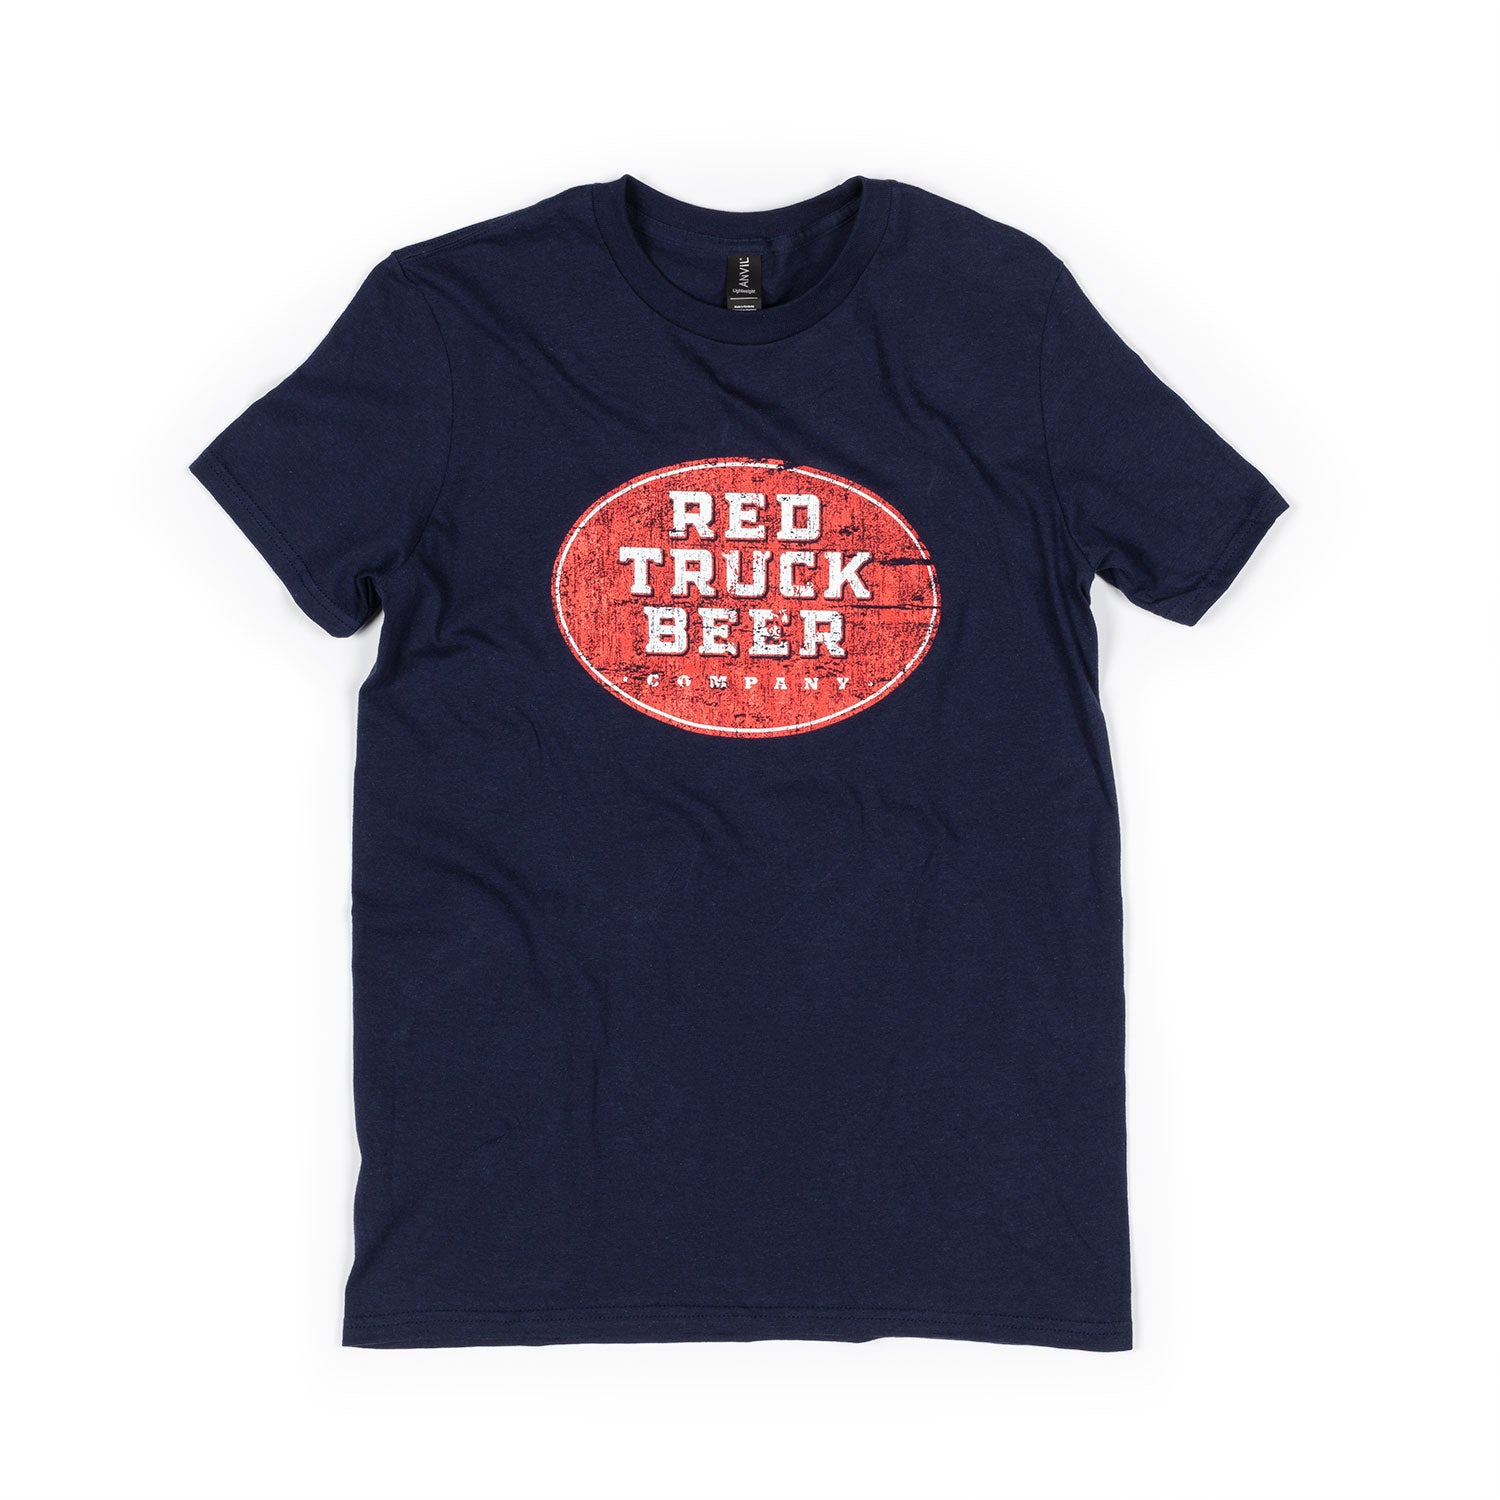 RED TRUCK RED OVAL NAVY TEE